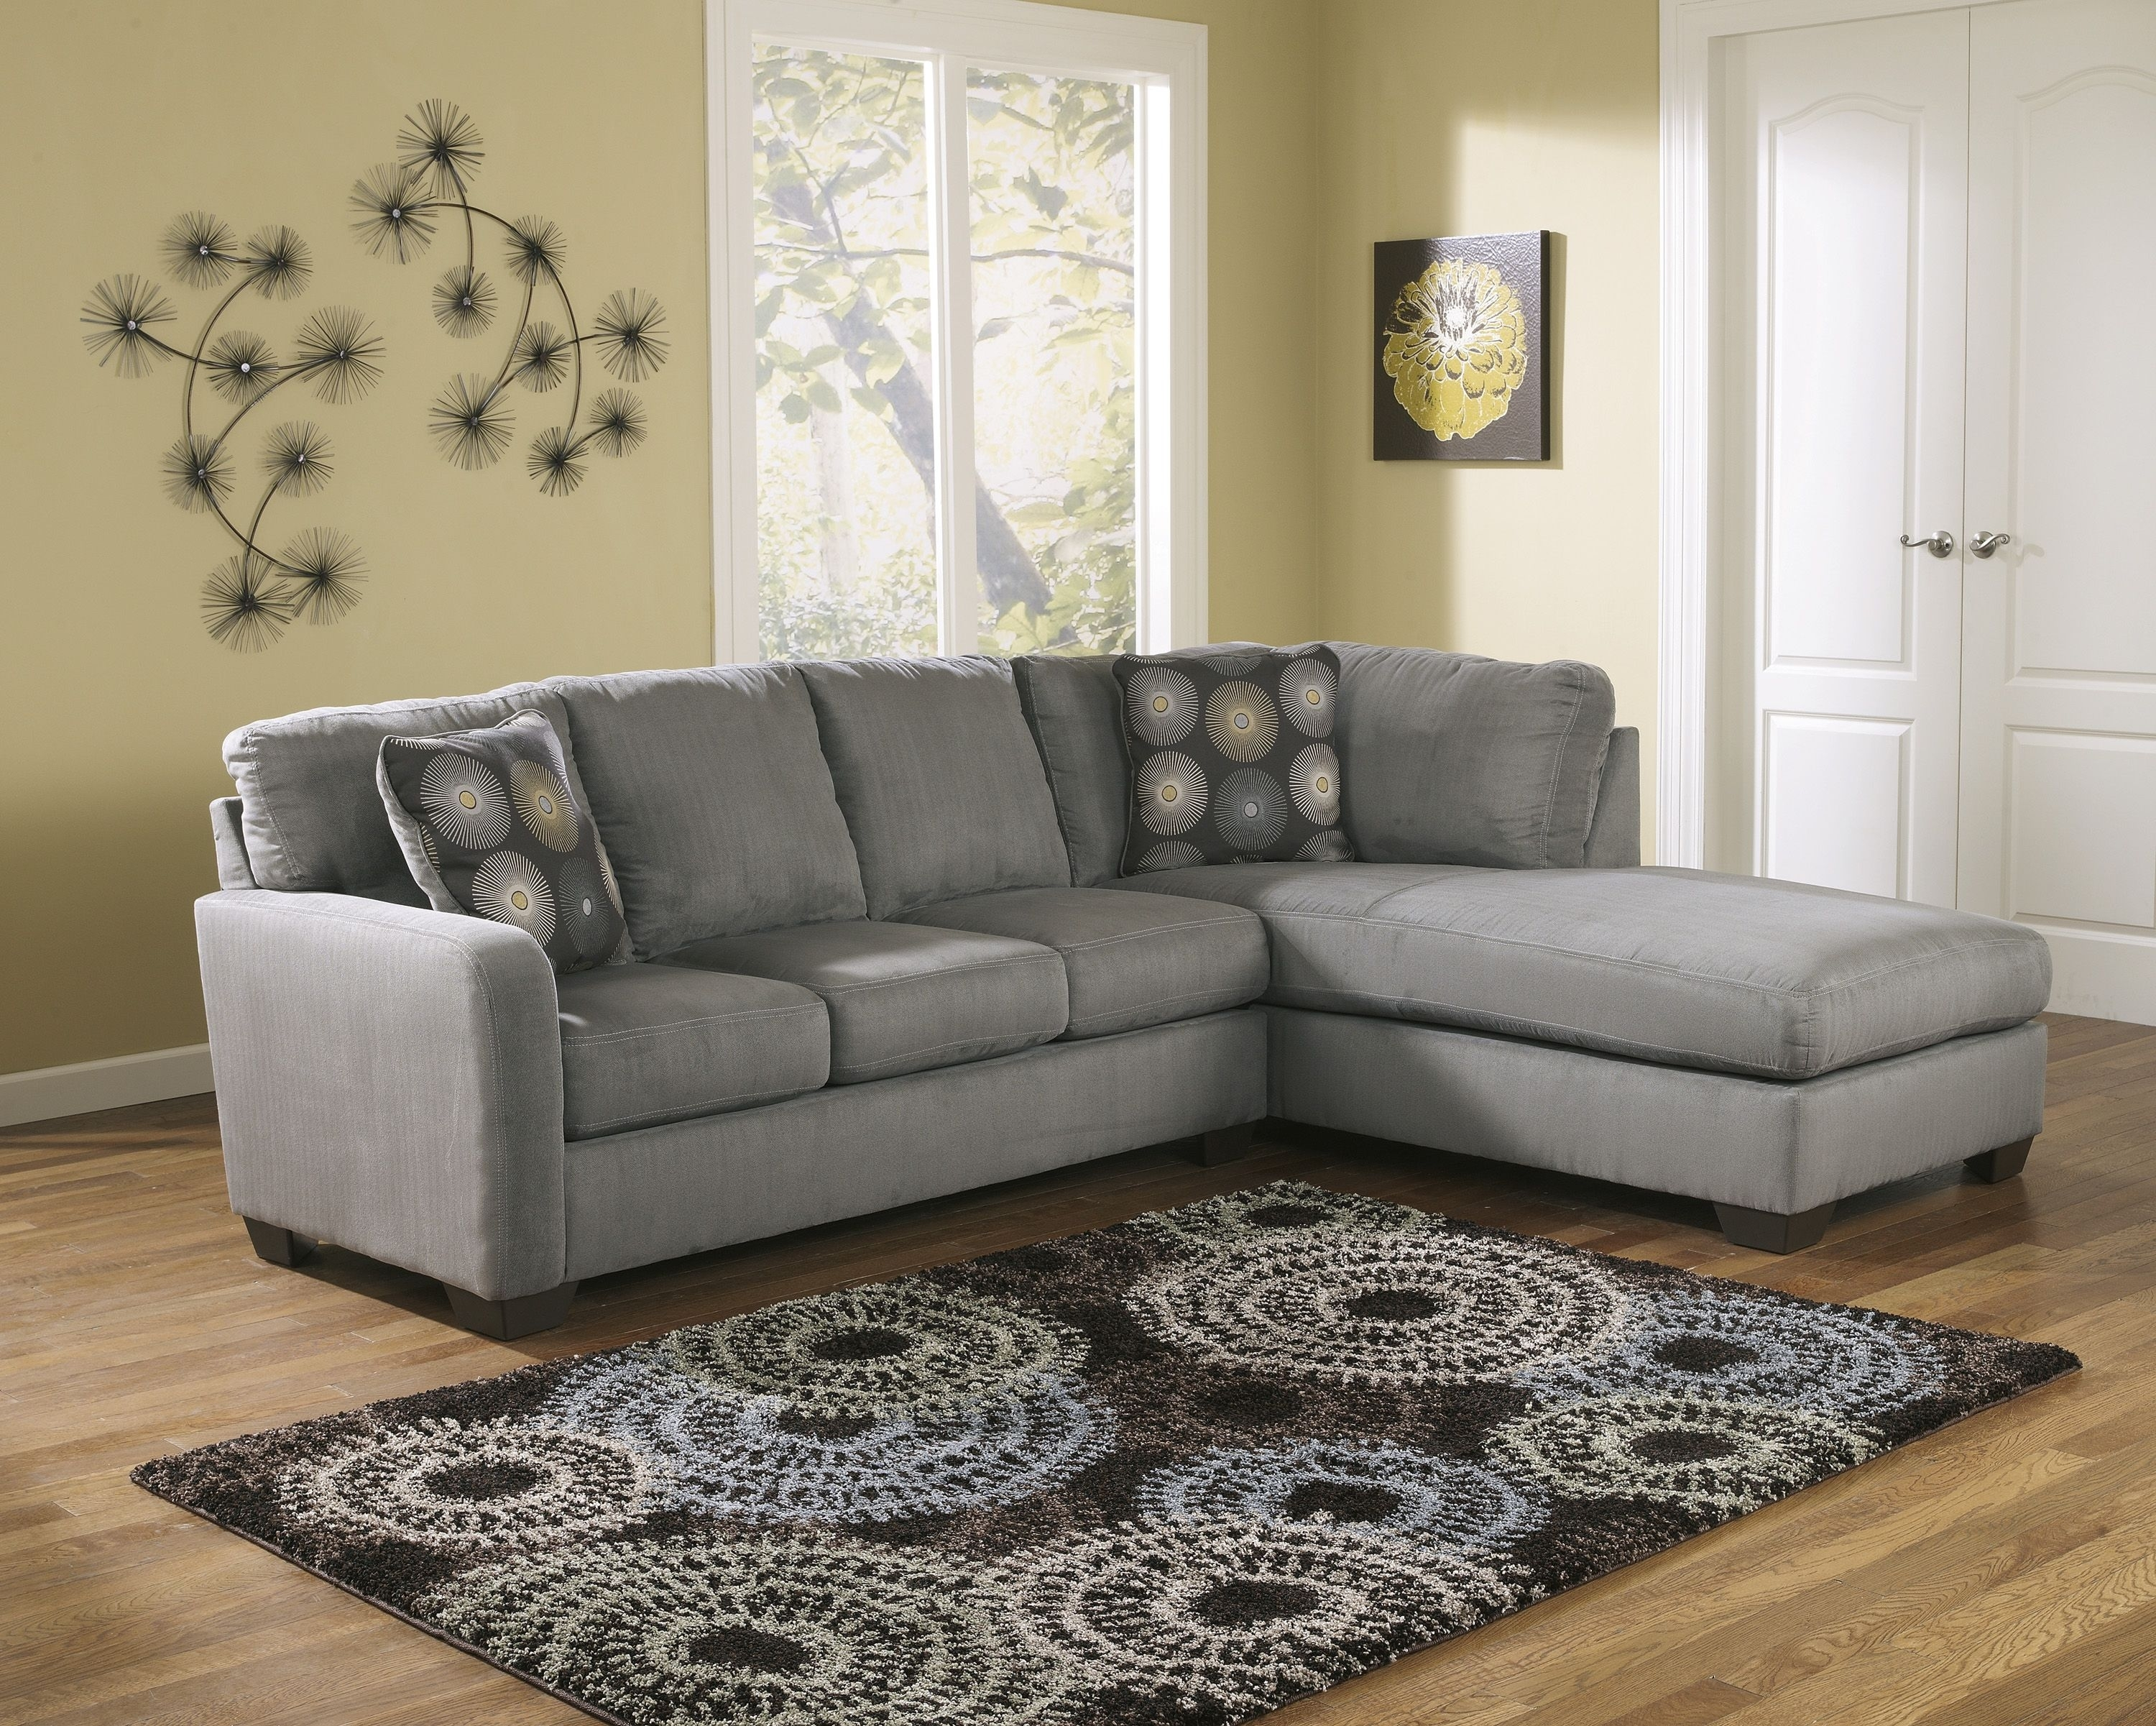 70200Rsfchaisesectionalashley Furniture In Wichita, Ks - Rsf regarding Wichita Ks Sectional Sofas